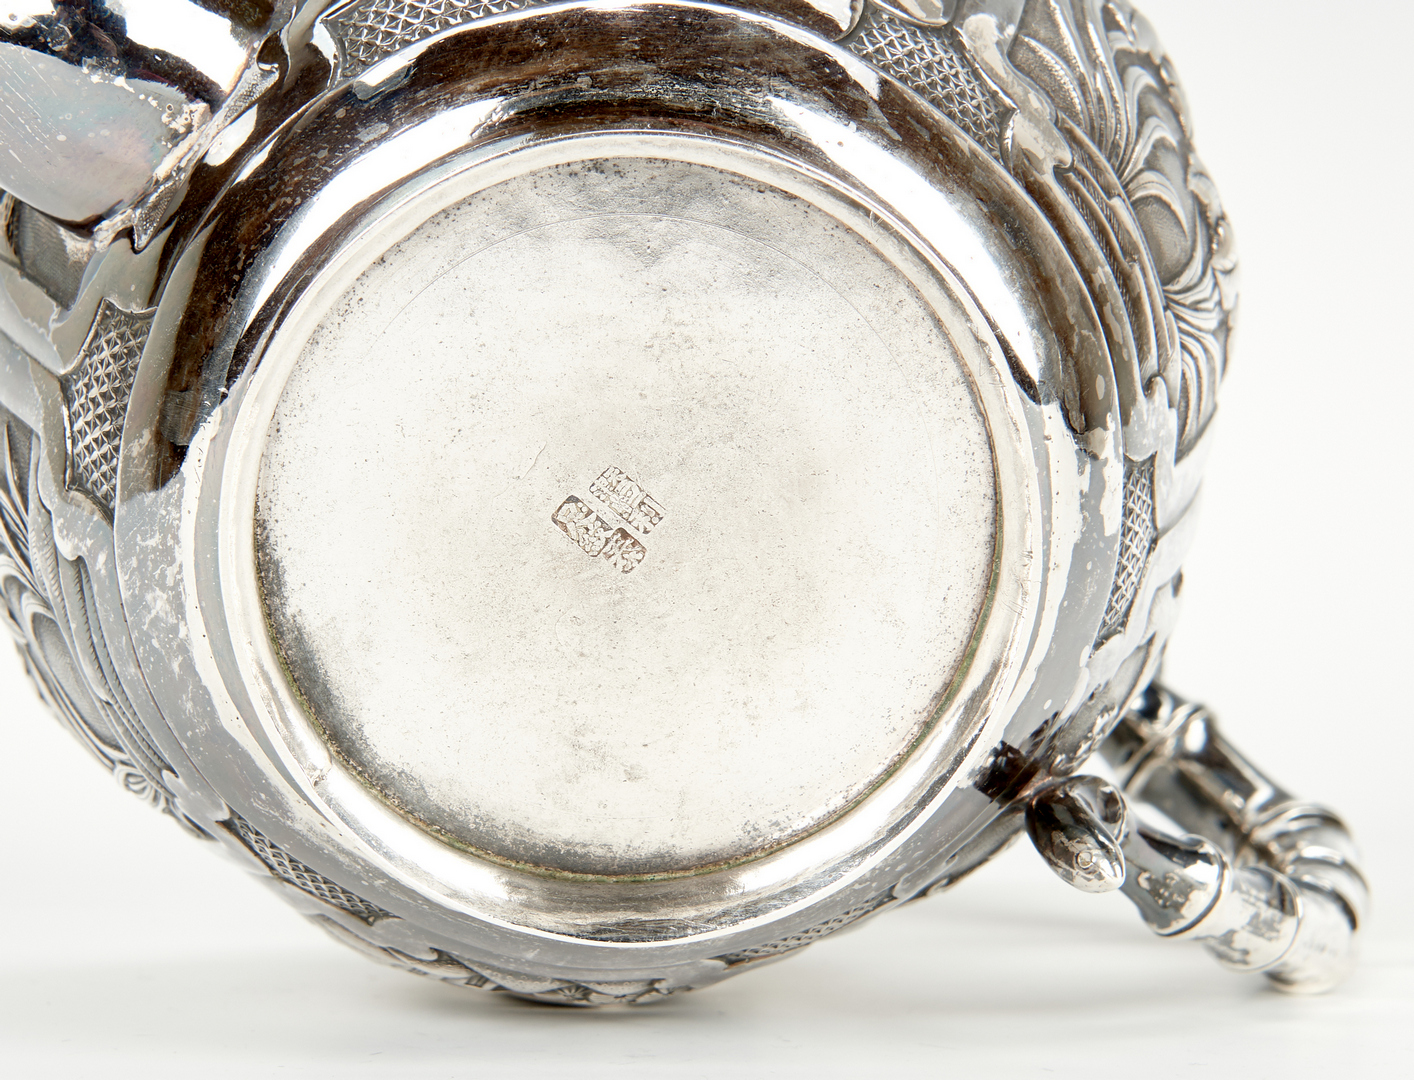 Lot 1: 3 Pc. Chinese Export Silver Tea Service